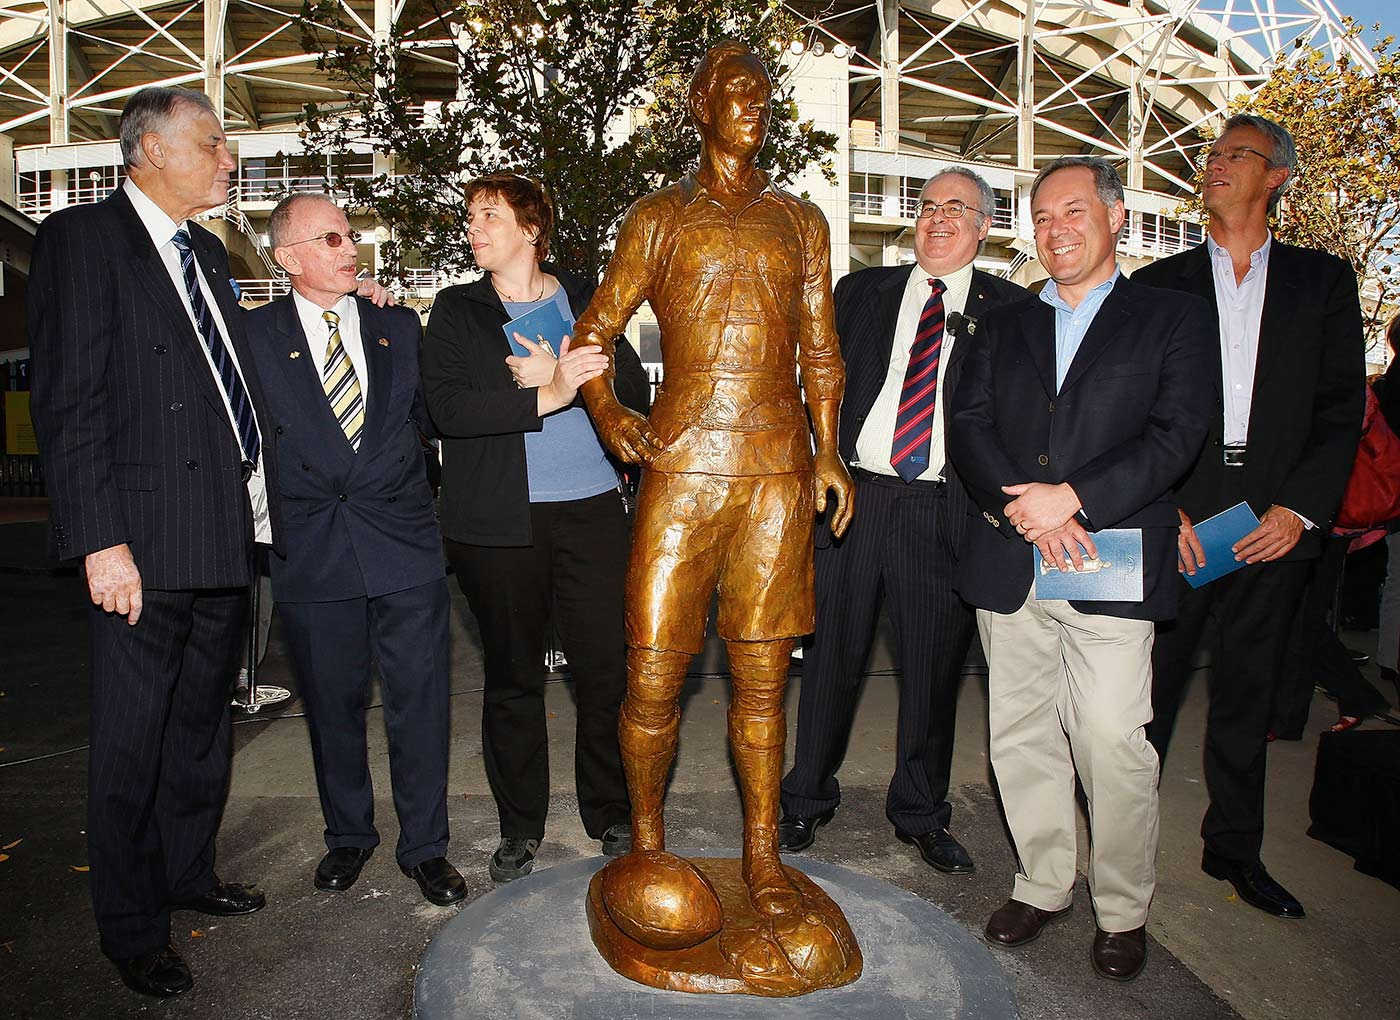 Basil Sellers (far left), sculptor Cathy Weiszmann (third from left), and Rod Cavalier (third from right) at the unveiling of a statue of rugby player Dally Messenger